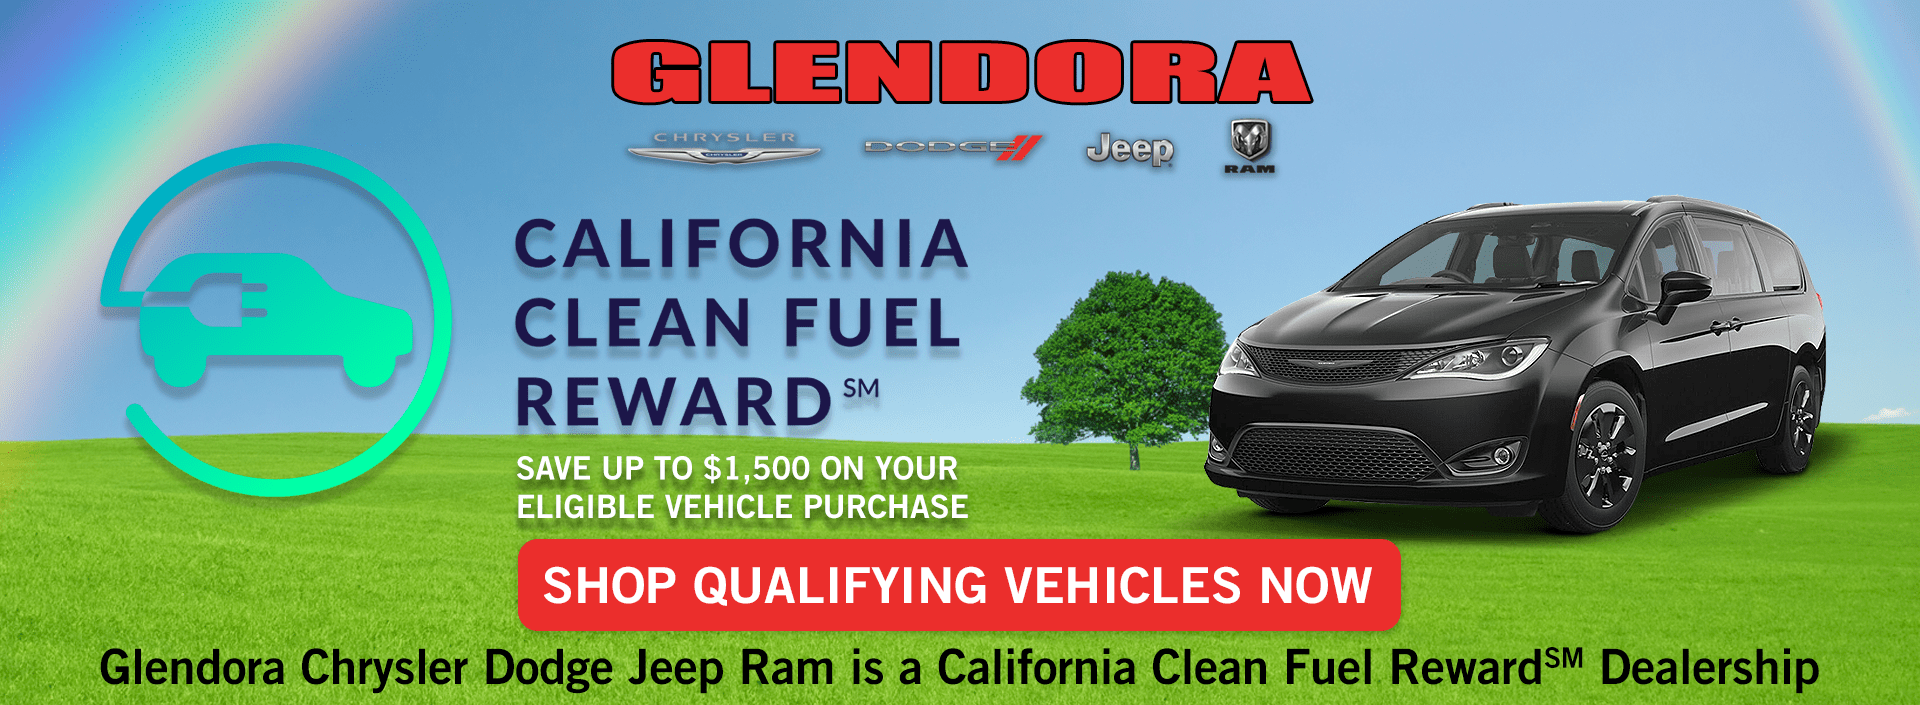 Glendora_CDJR_California_Clean_Fuel_Rewards_1